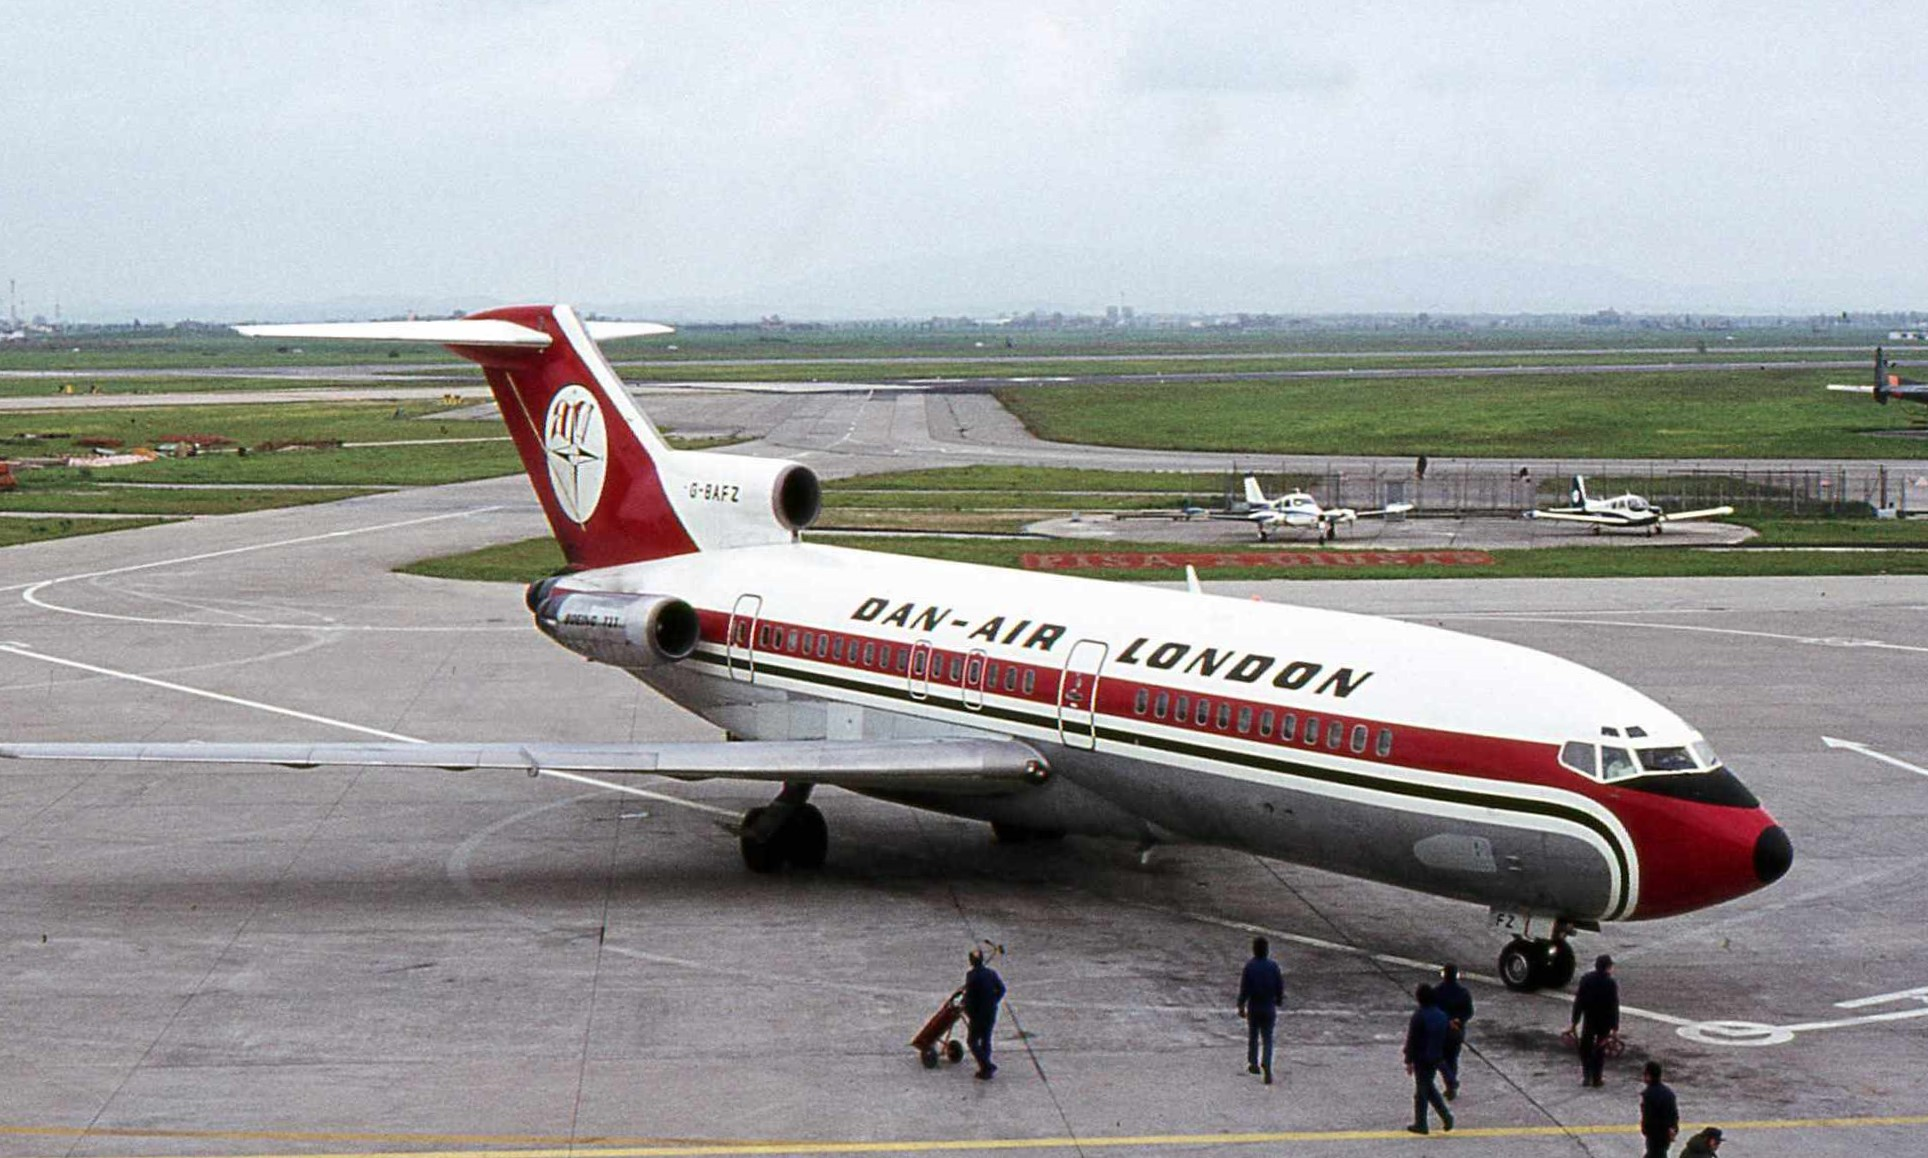 File:Dan-Air London B-727 G-BAFZ.jpg